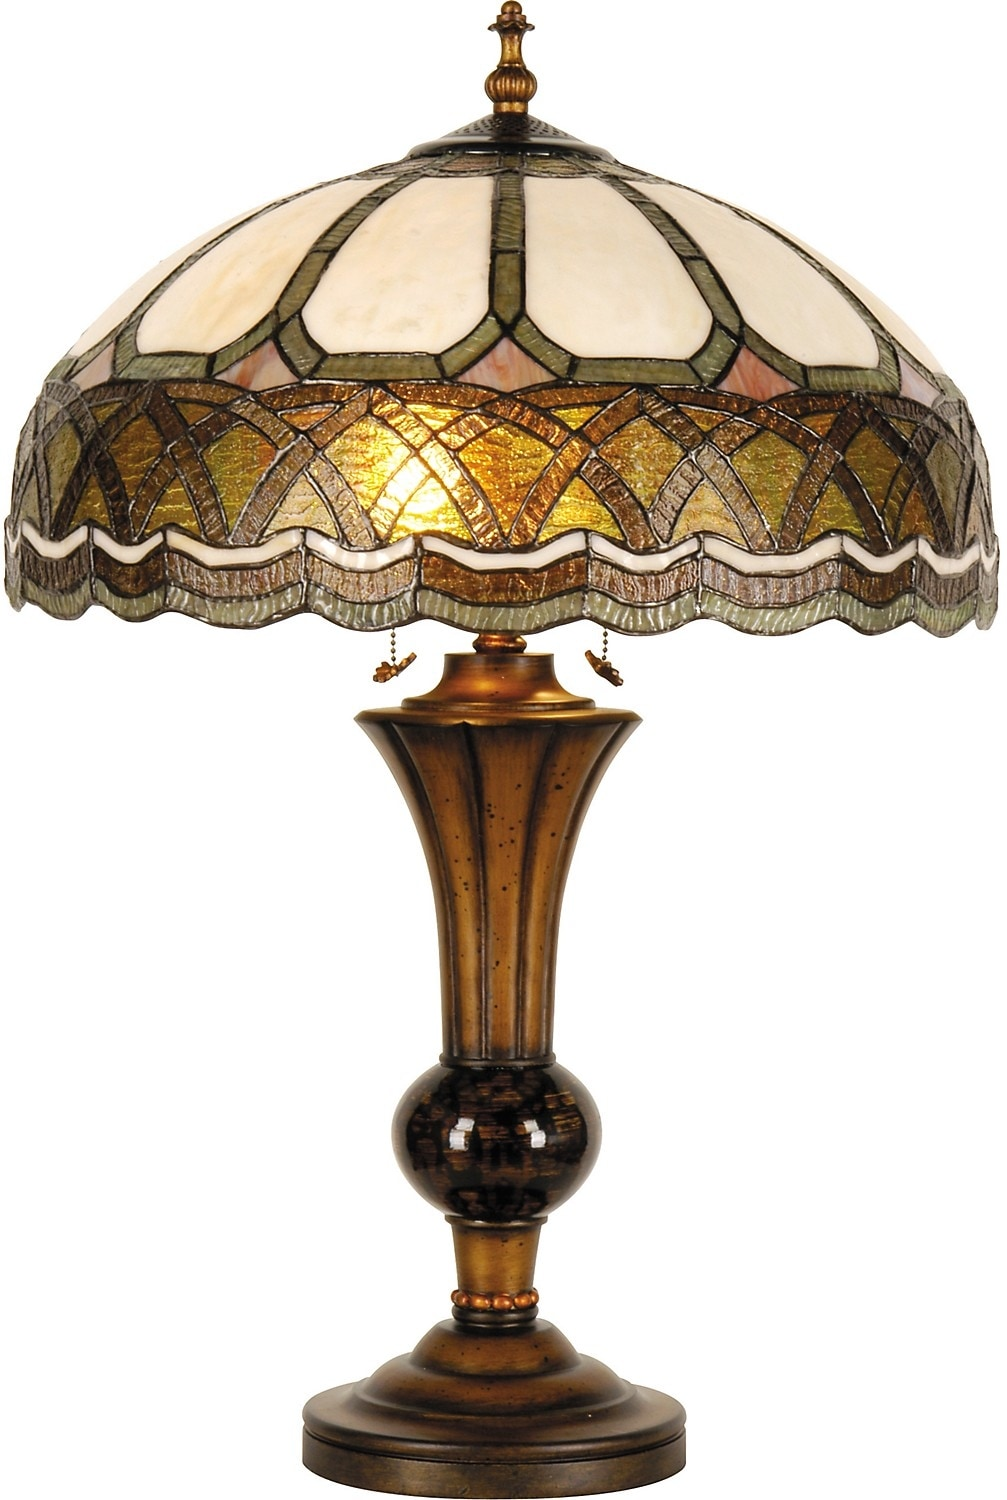 Home Accessories - Cameron Tiffany-Style Table Lamp with Stained Glass Shade